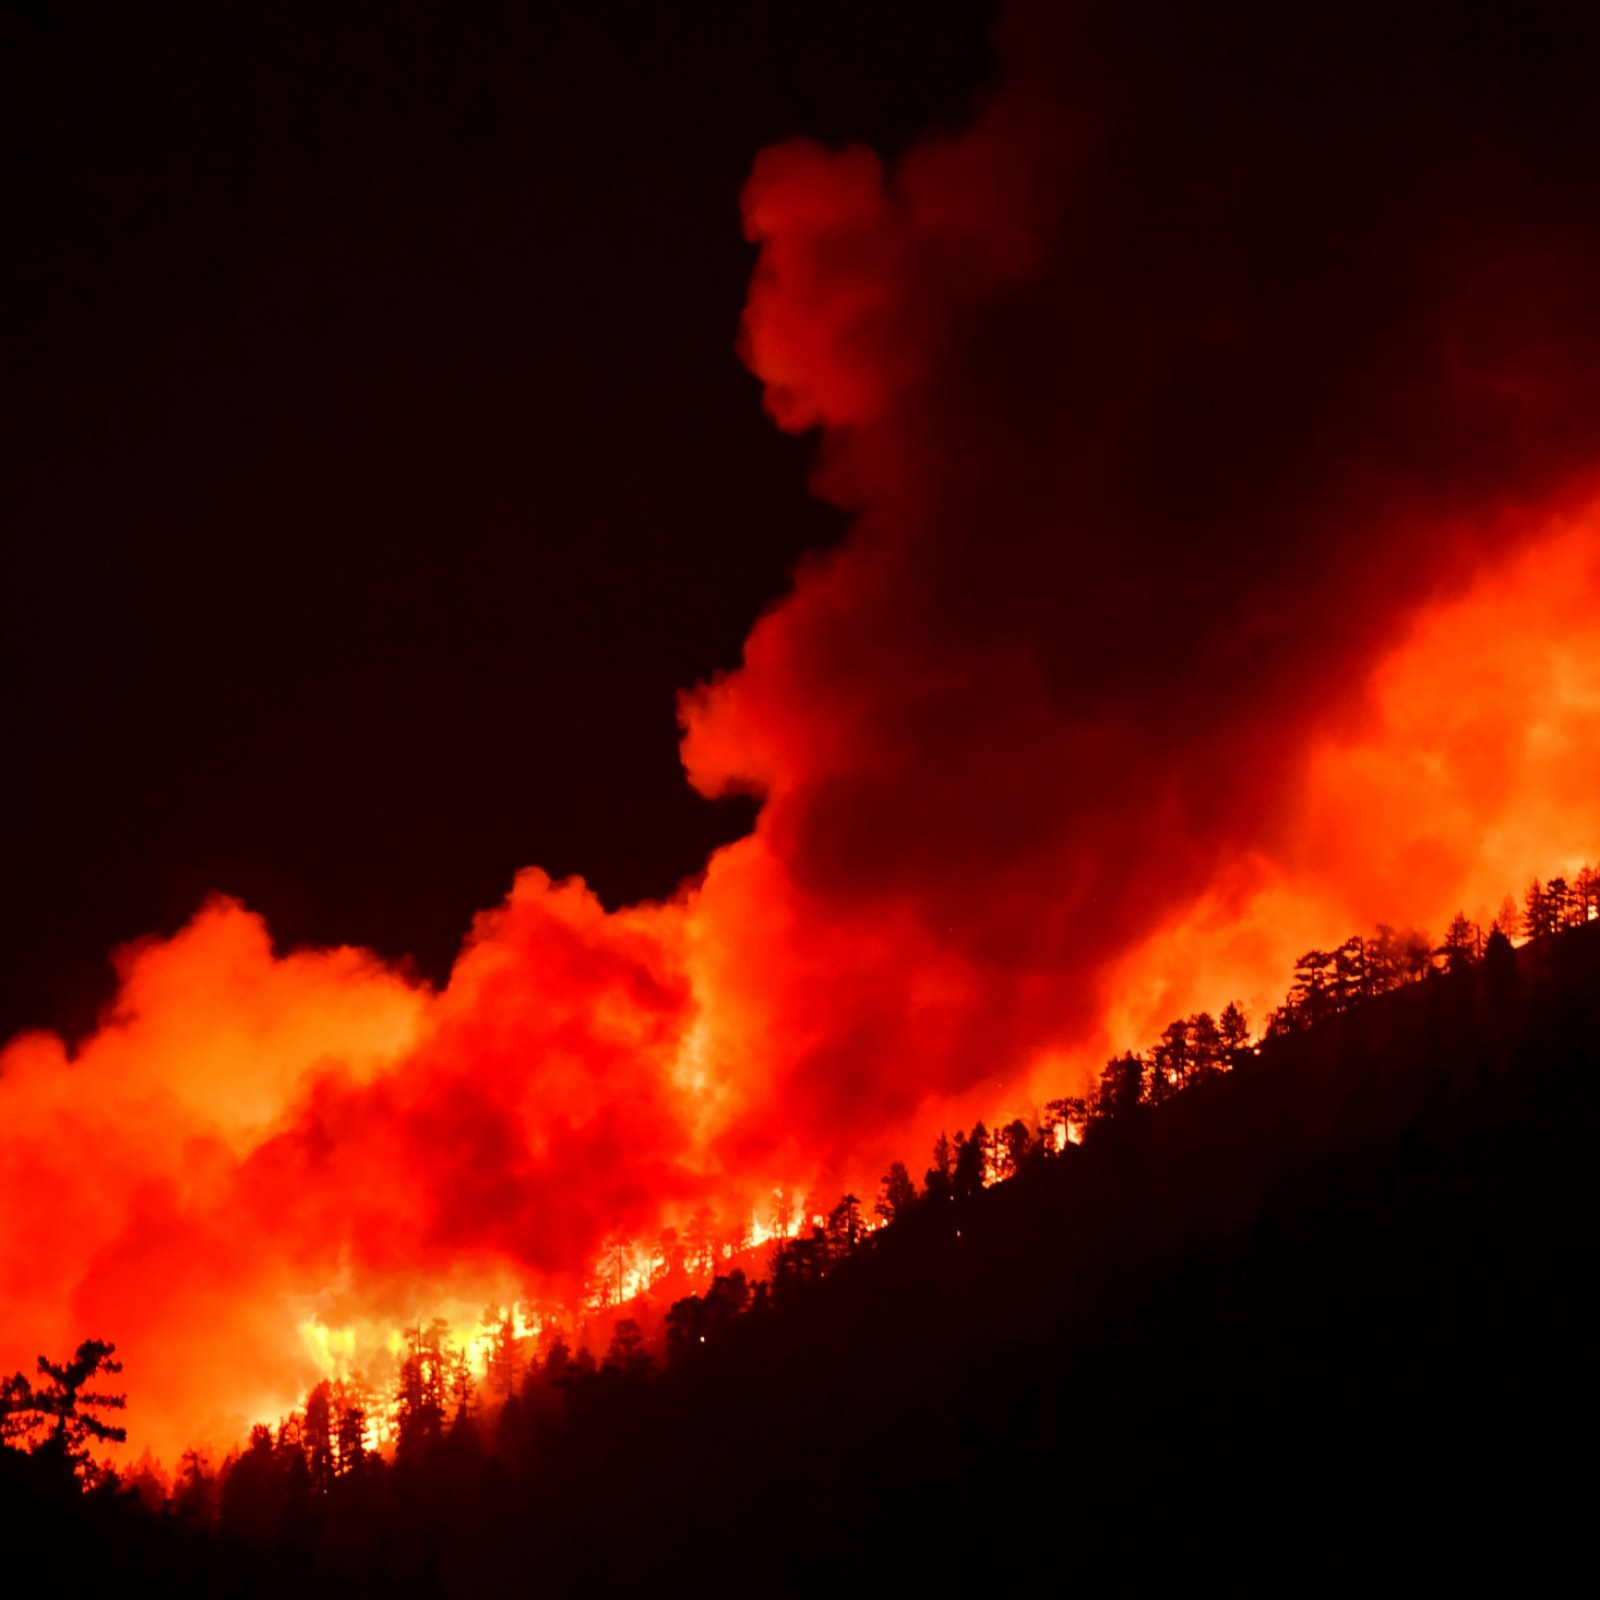 California Fire Map Update As Bobcat Blaze Exceeds Critical Thresholds For Large Fire Growth